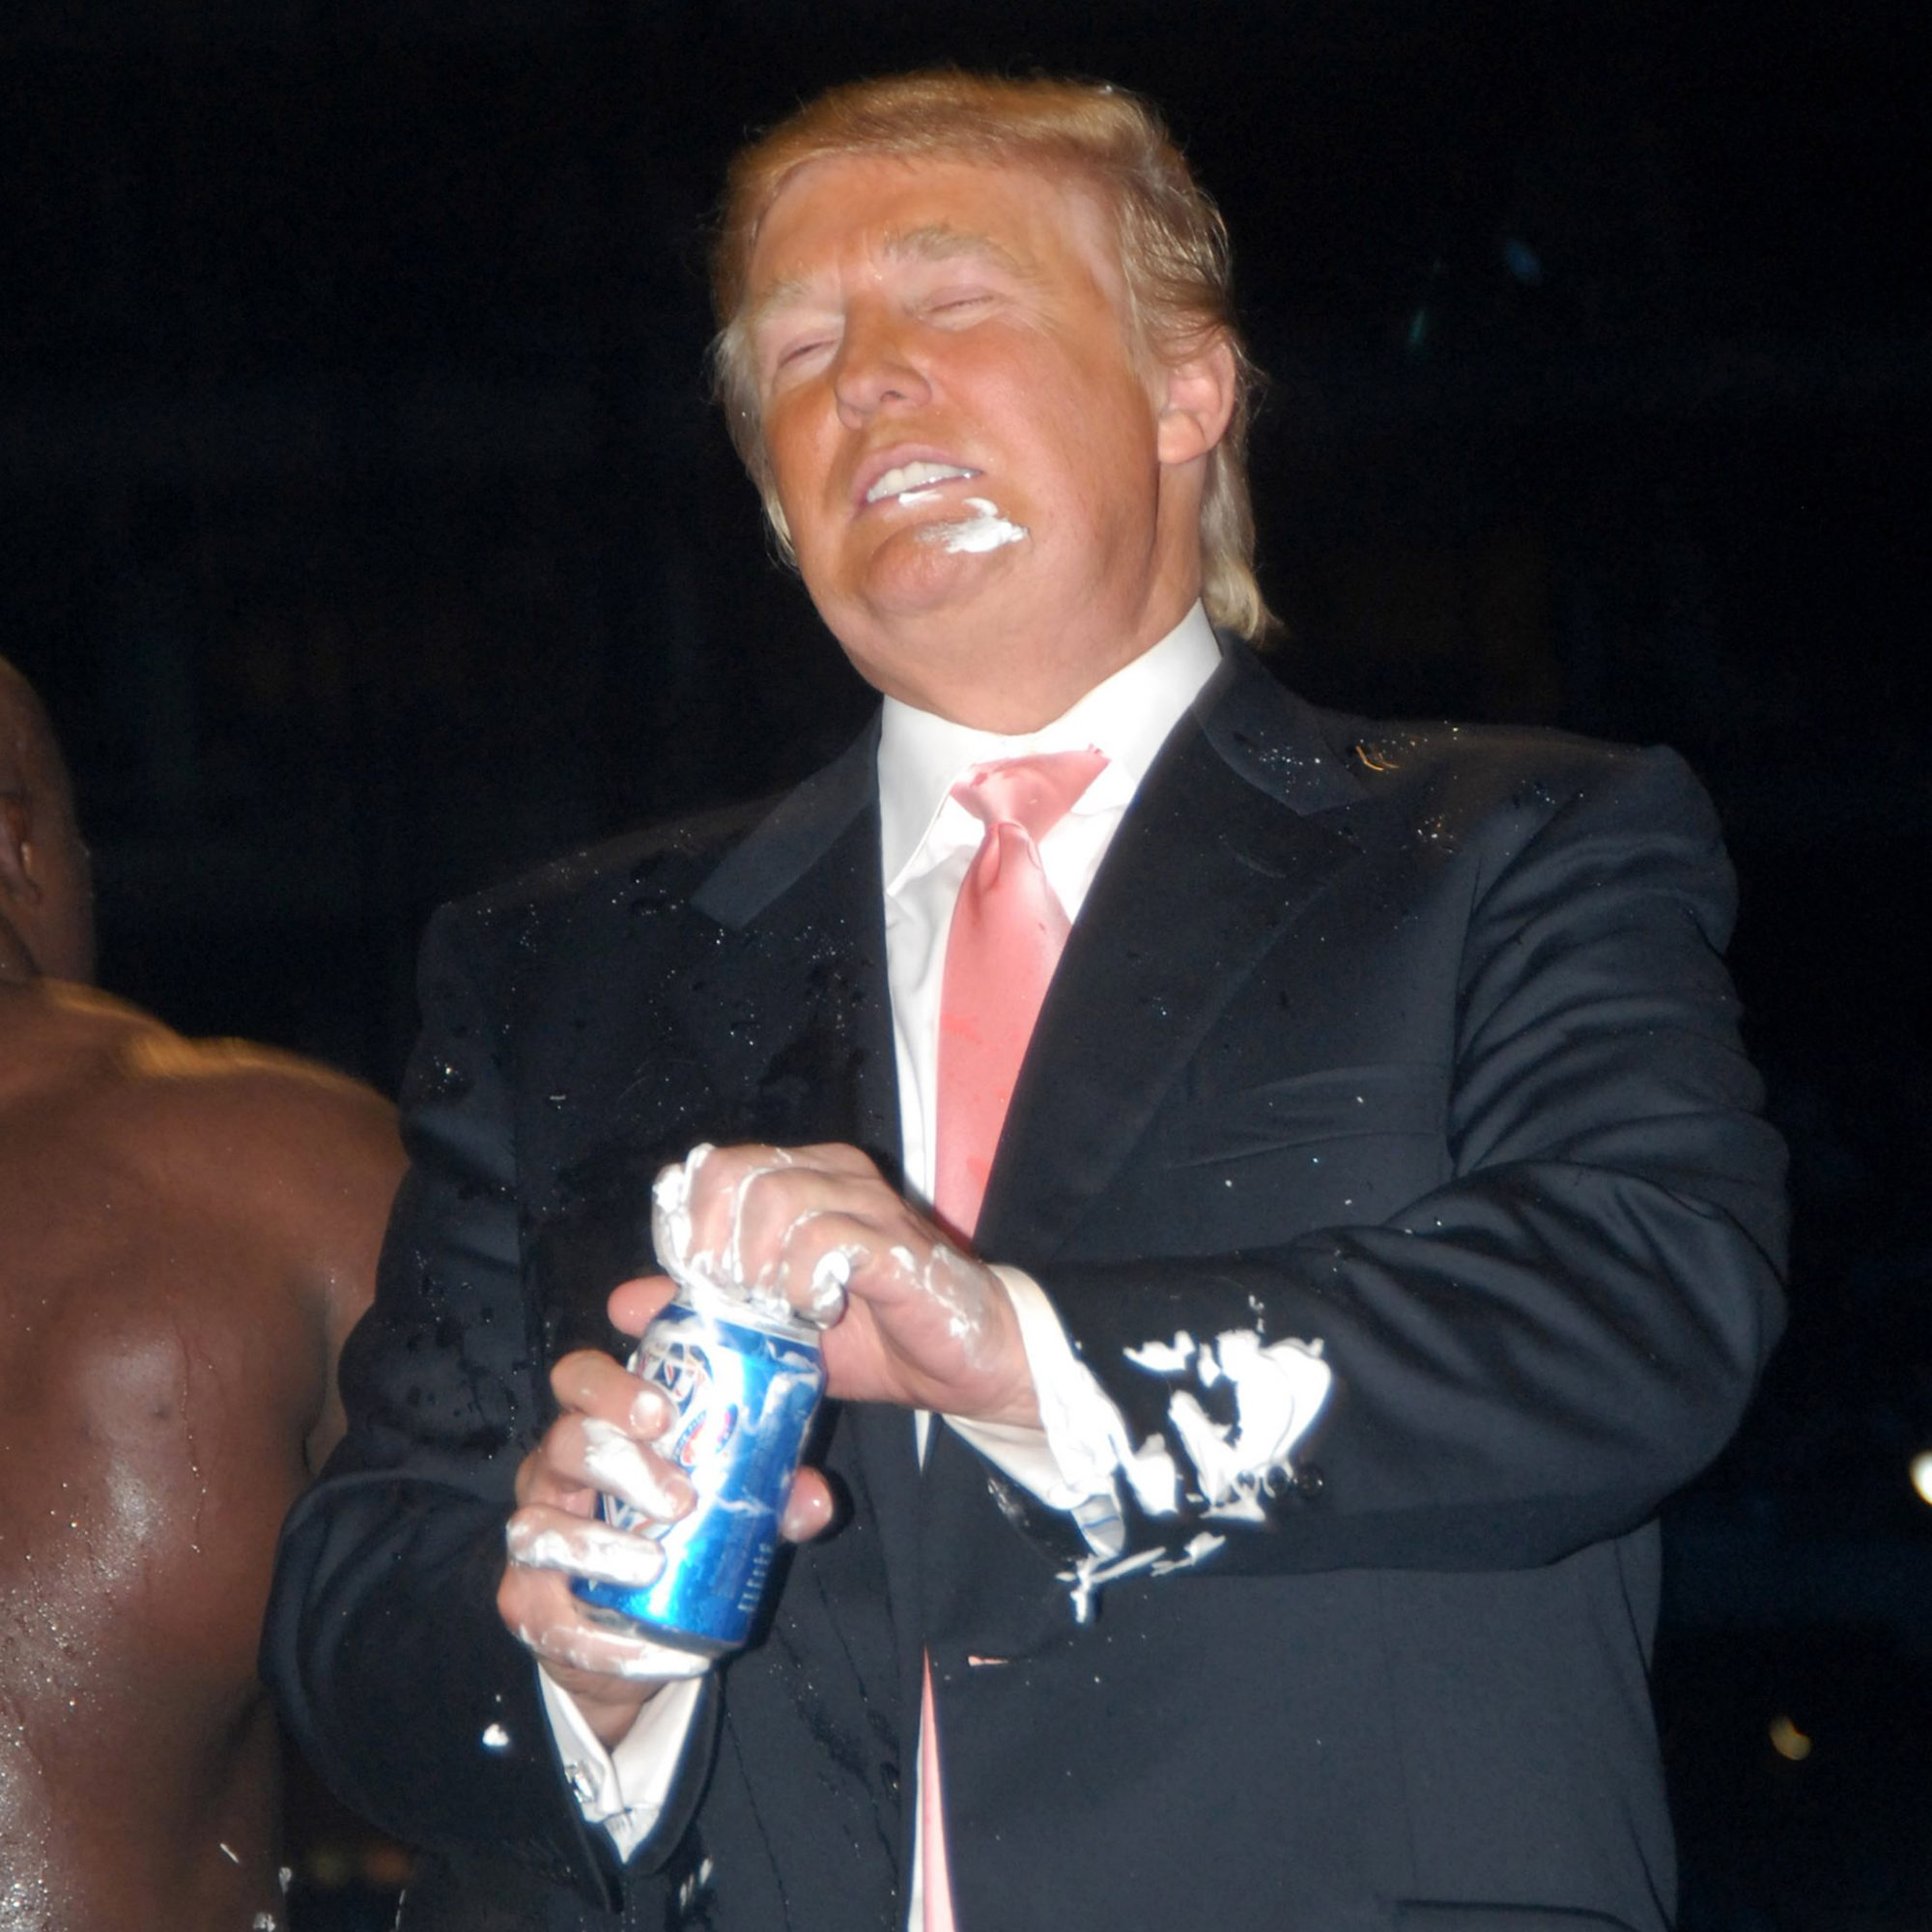 Brewery Offers Trump Free Stake in Their Company in Hopes He Will Ditch Politics